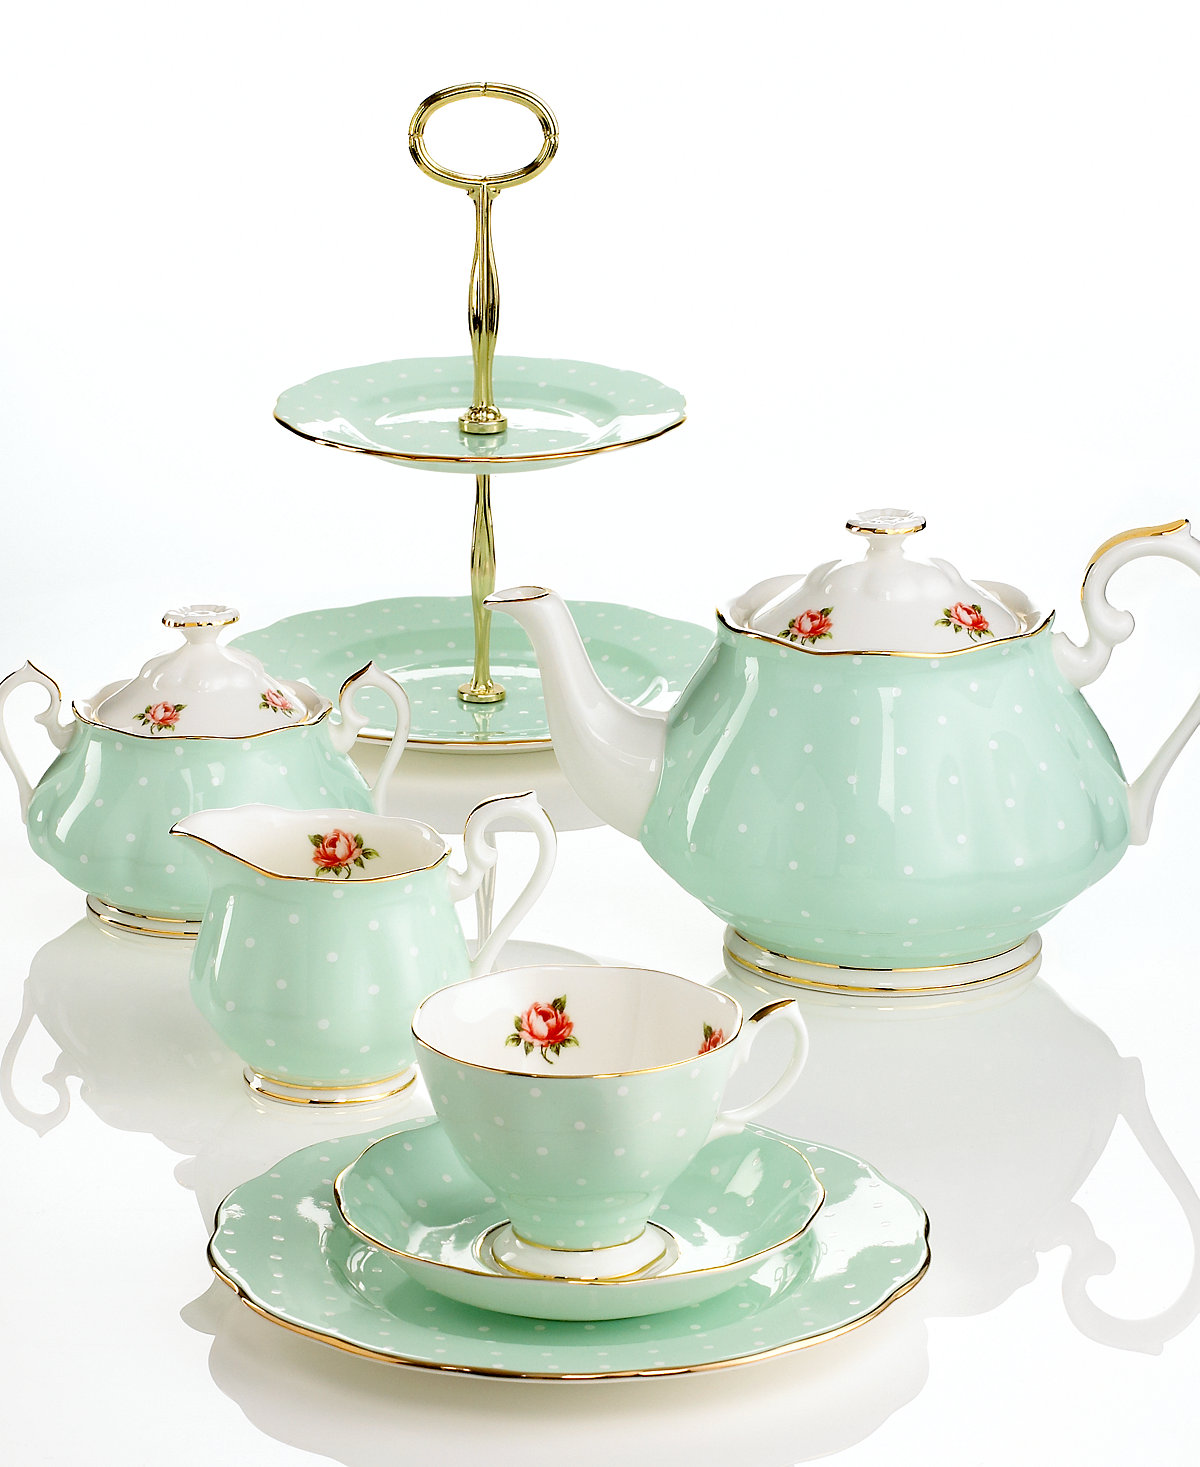 What You Should Know About Picking Wedding China| Wedding China, How to Pick China, China Picking, China Care Hacks #WeddingChina #Wedding #WeddingChinaTips